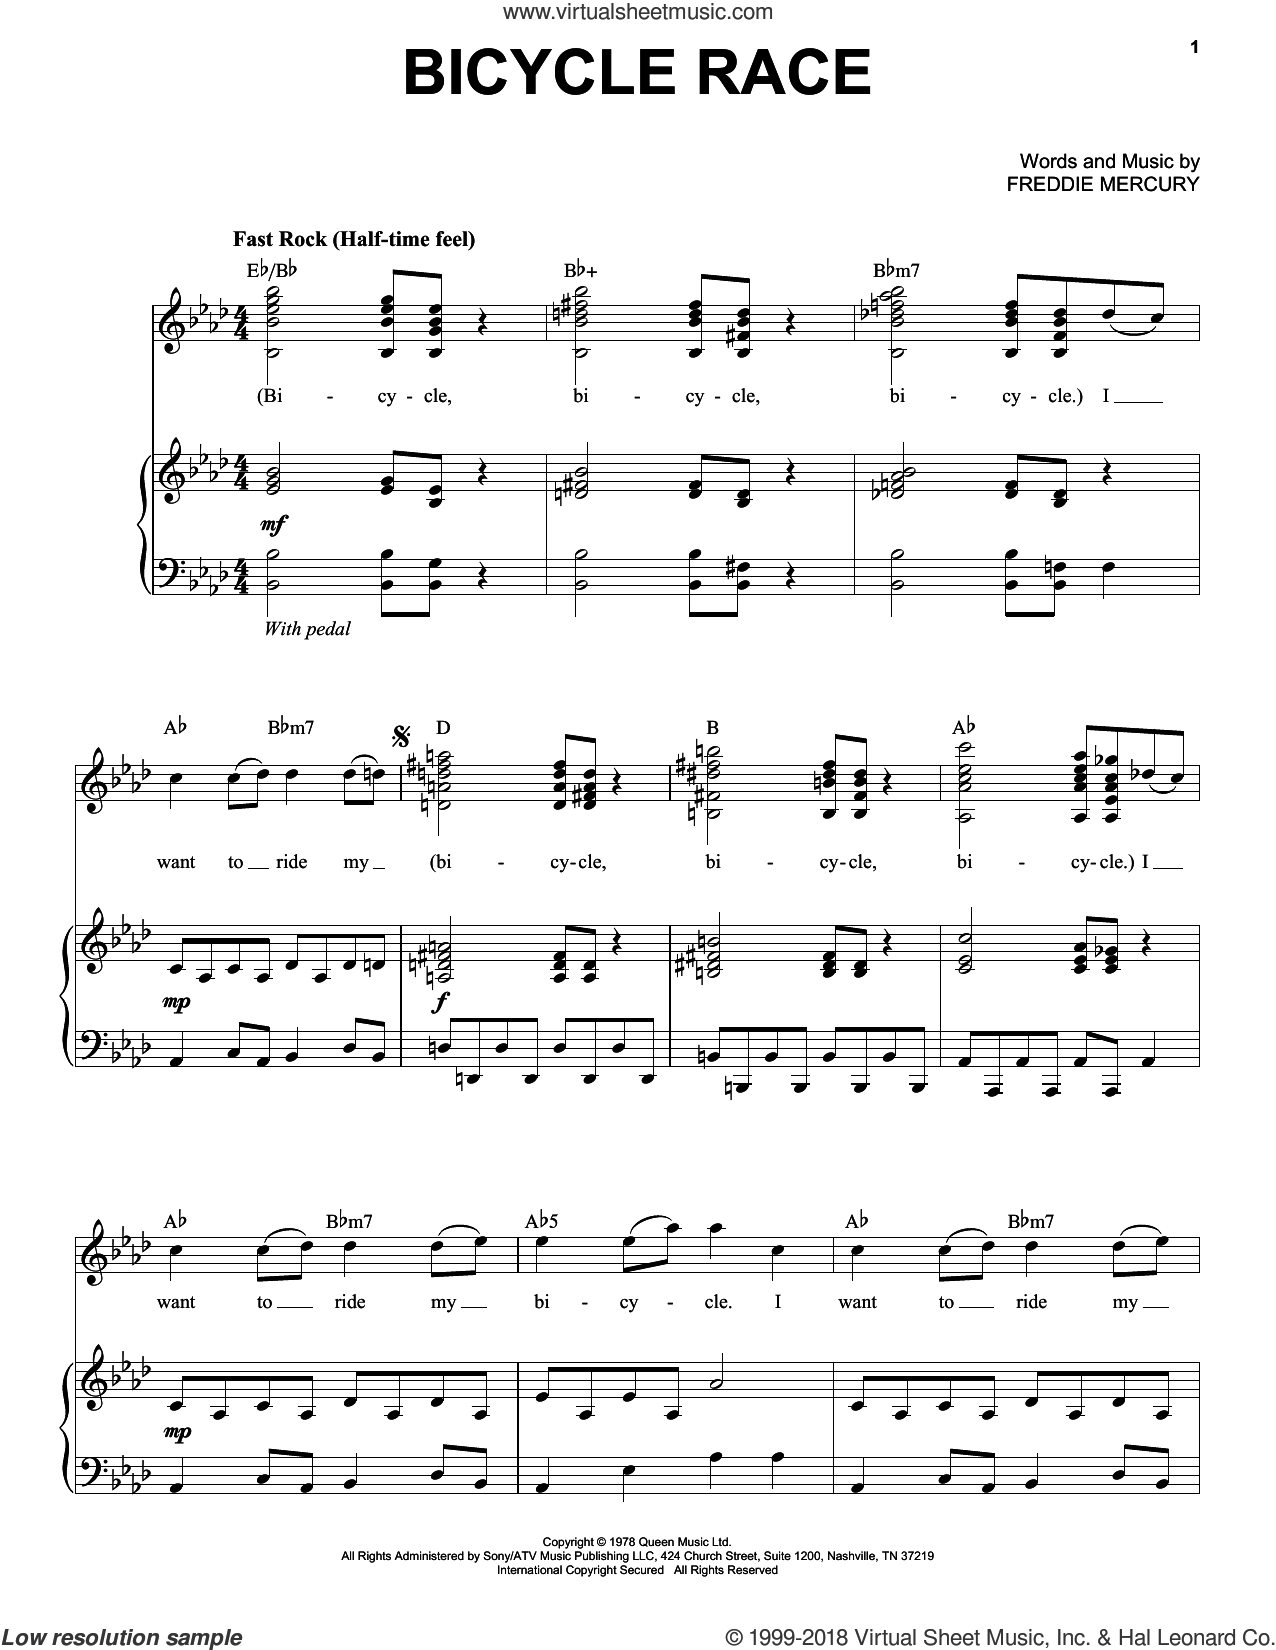 Bicycle Race sheet music for voice and piano by Queen and Freddie Mercury, intermediate skill level